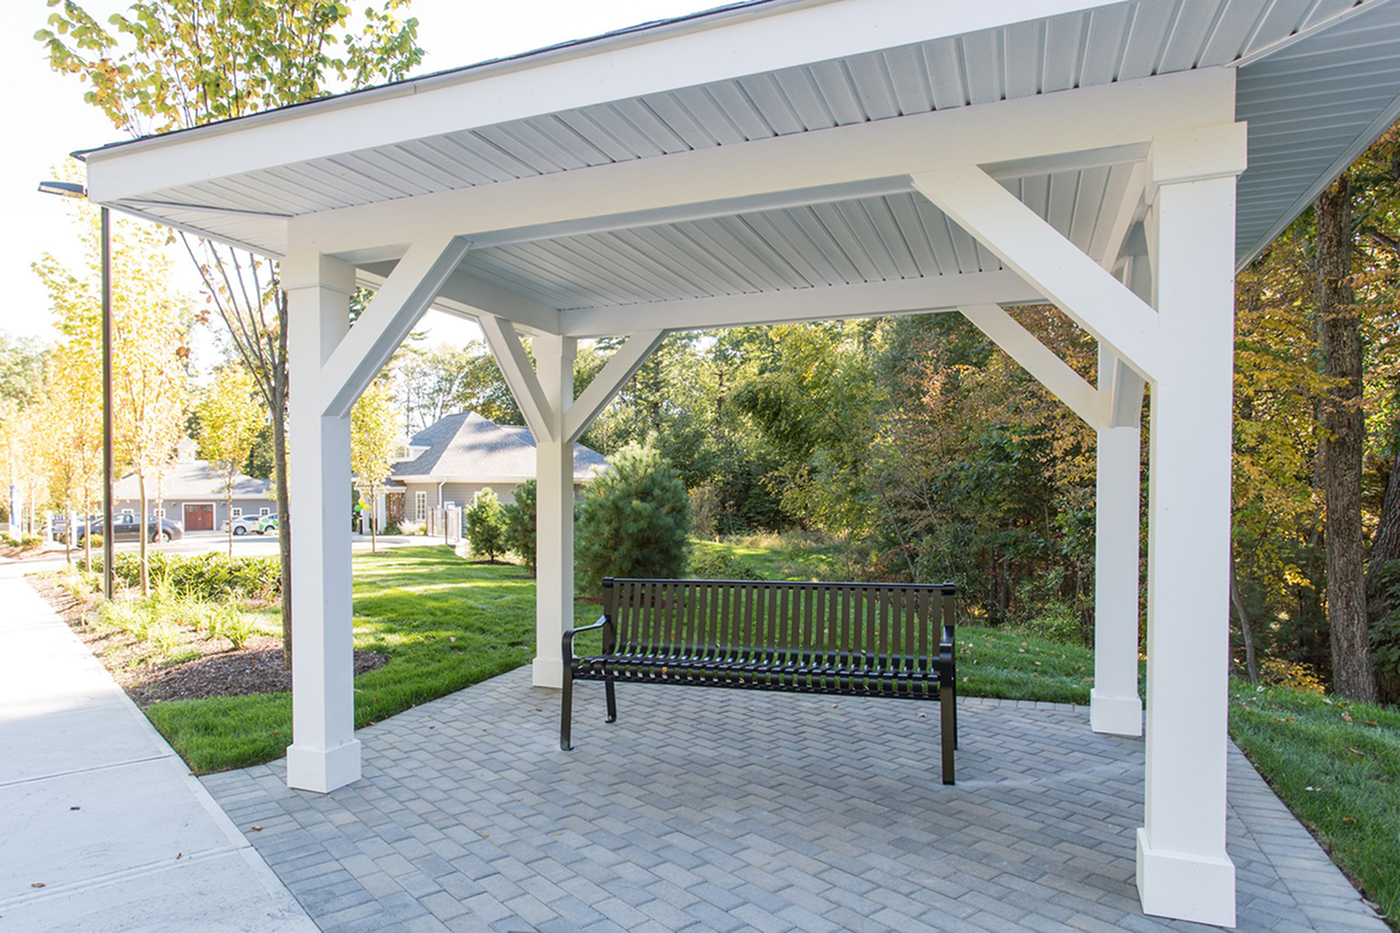 Community Outdoor Seating and Gazebo